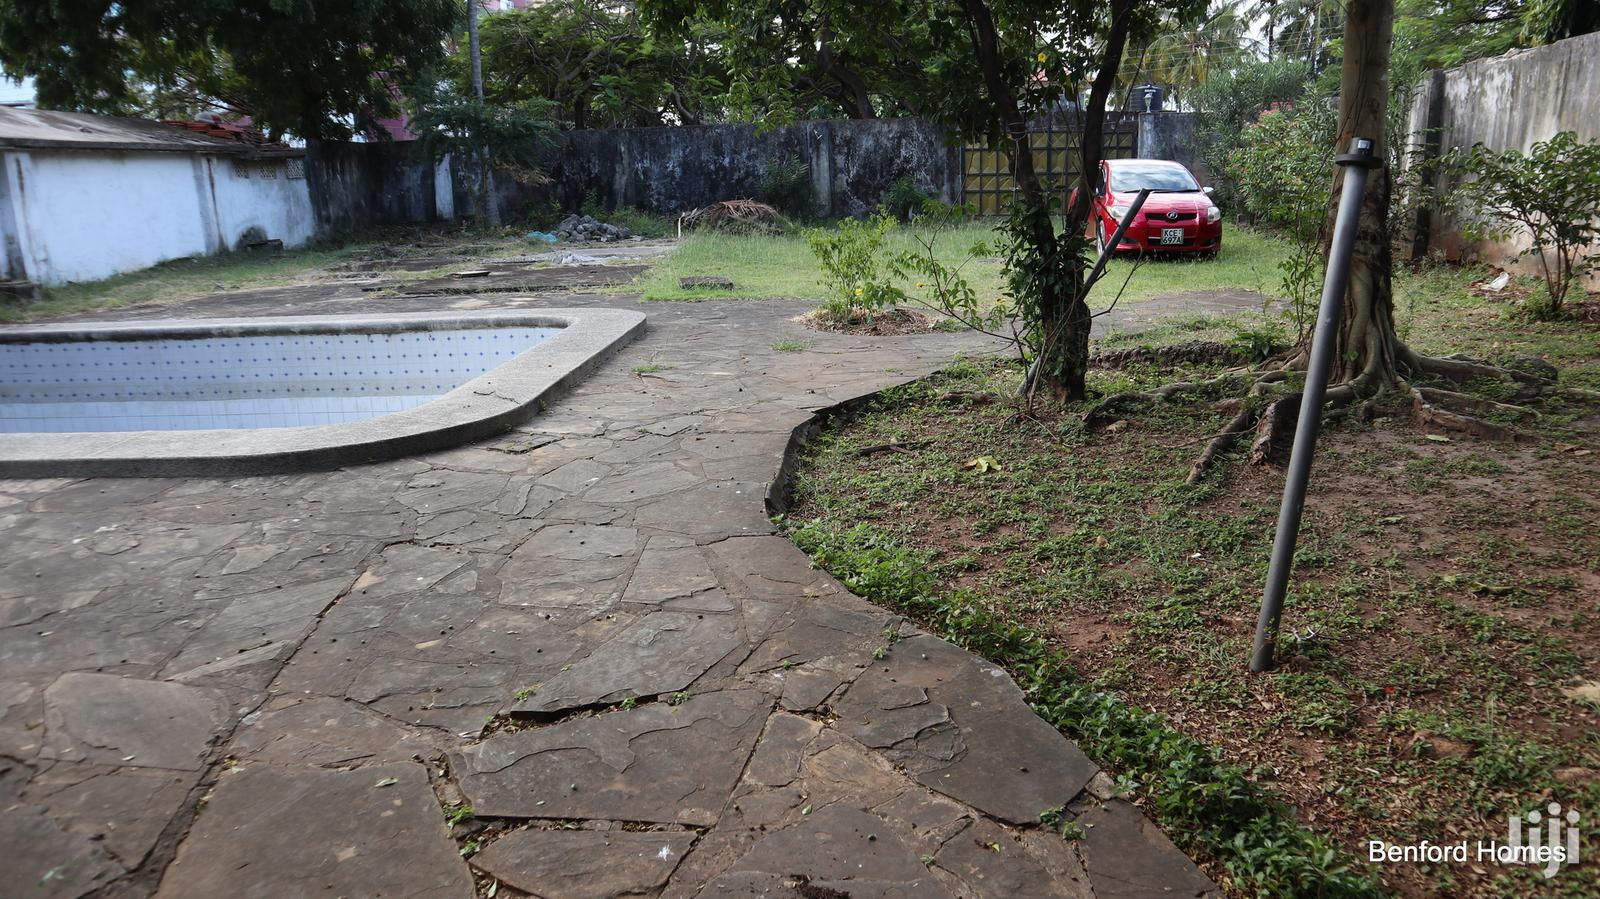 Quarter Acre On Sale City Mall Nyali/Benford Homes